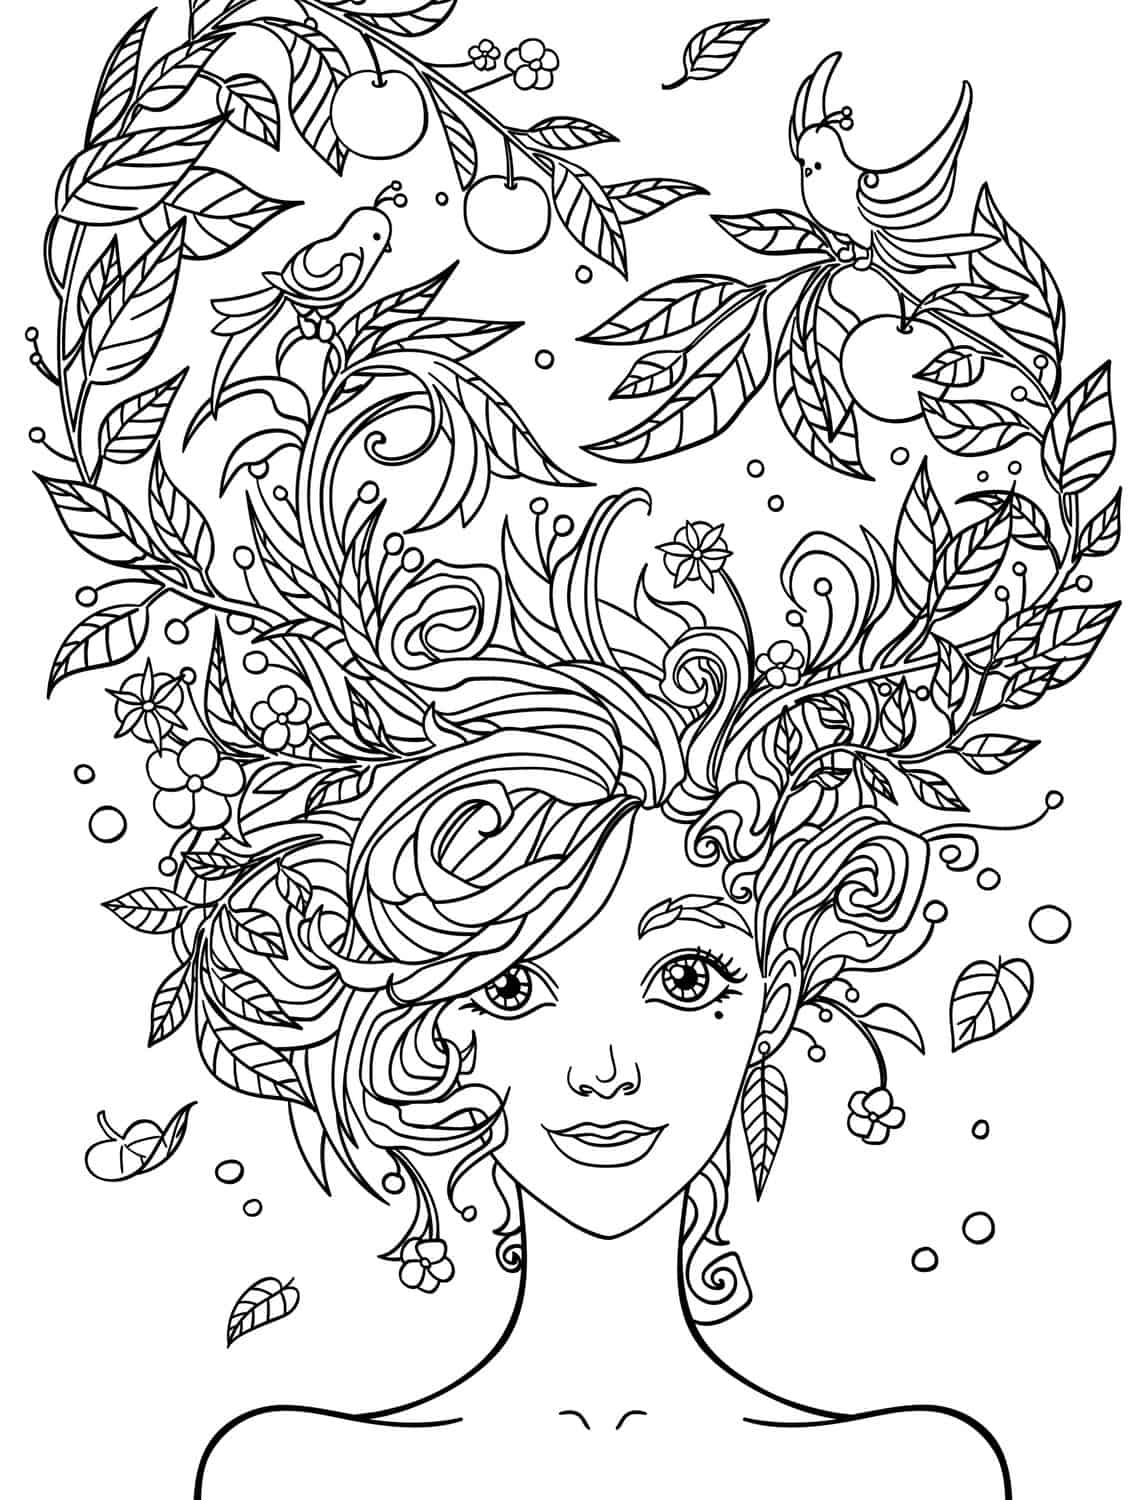 10 crazy hair adult coloring pages page 5 of 12 nerdy for Adult color pages